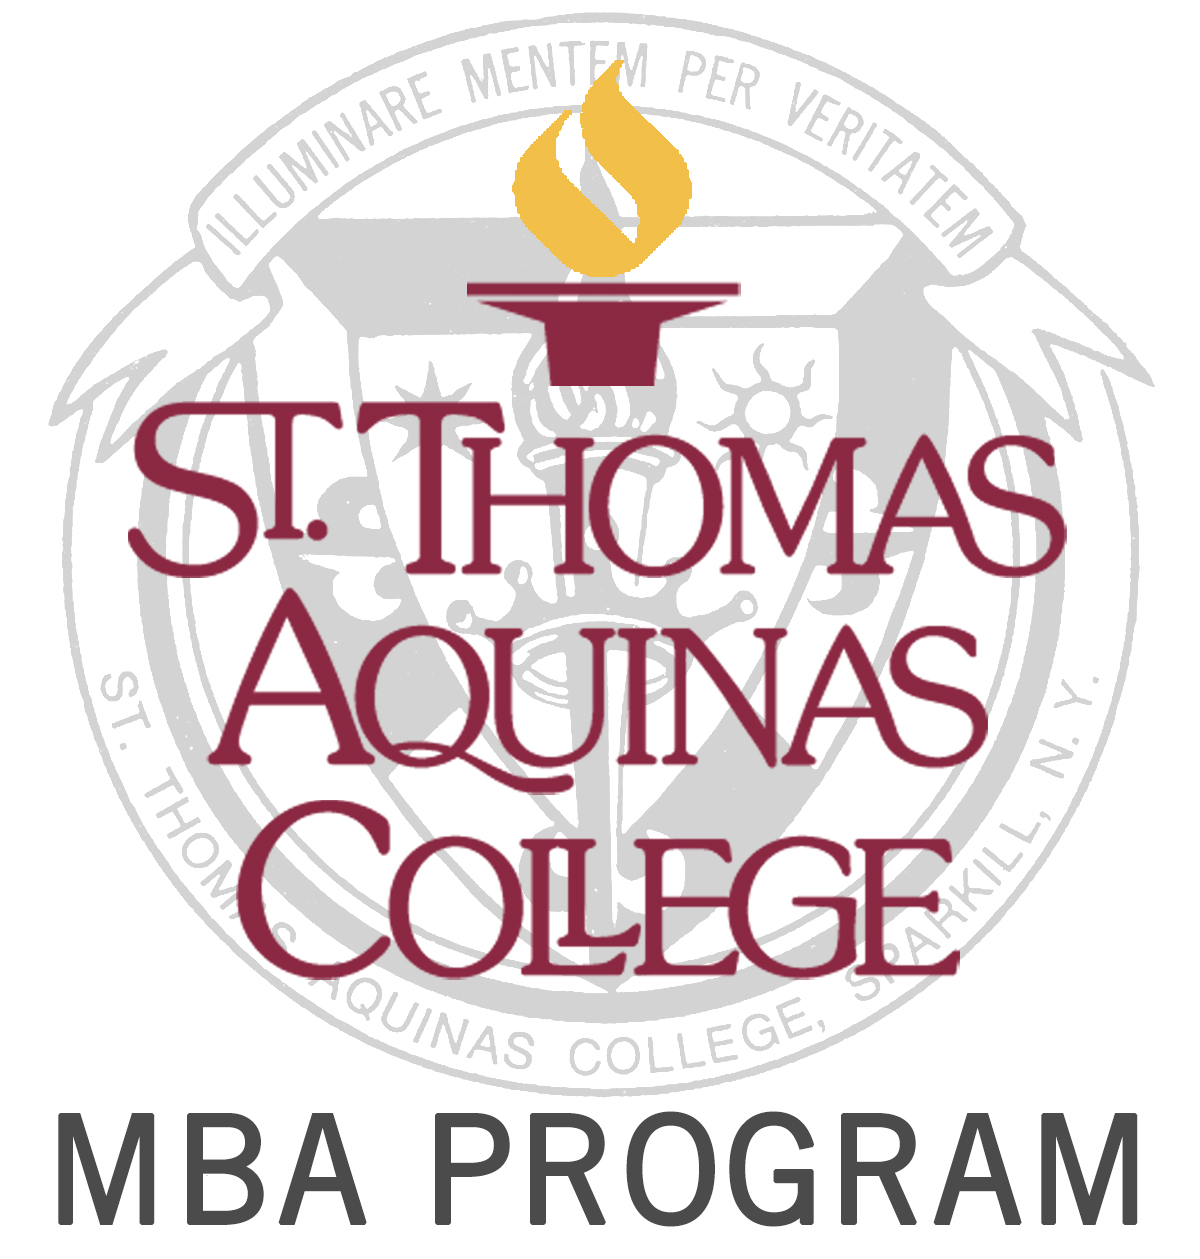 mba with college logo and seal